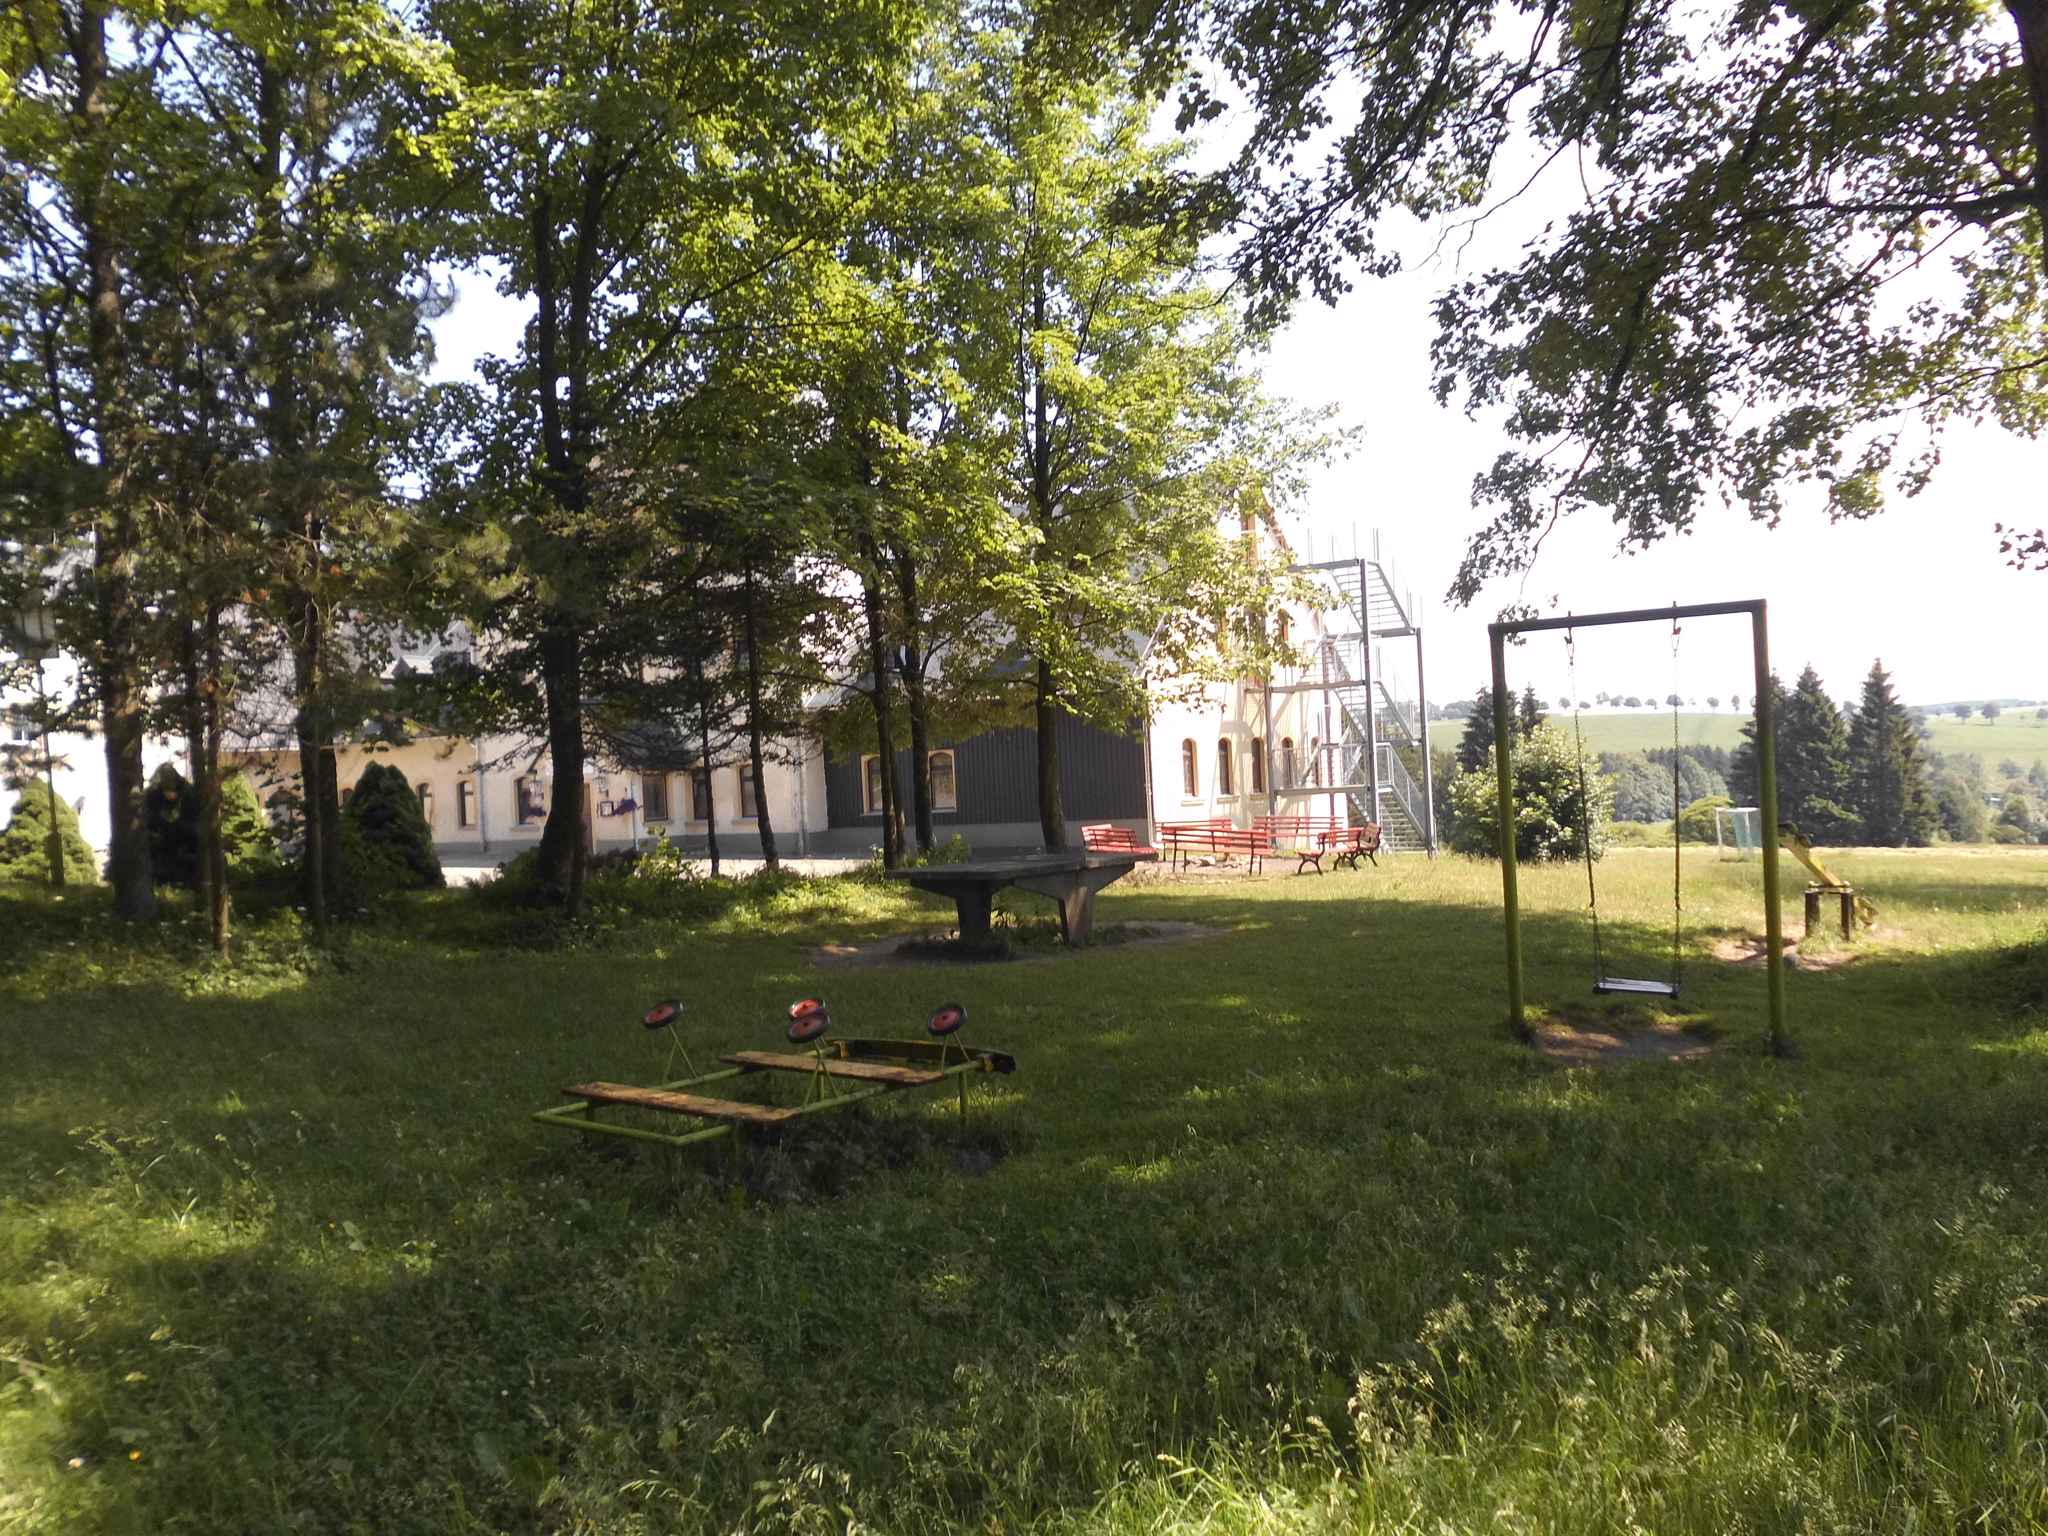 Holiday apartment in ruhiger Waldrandlage (322516), Sayda, The Ore Mountains, Saxony, Germany, picture 9